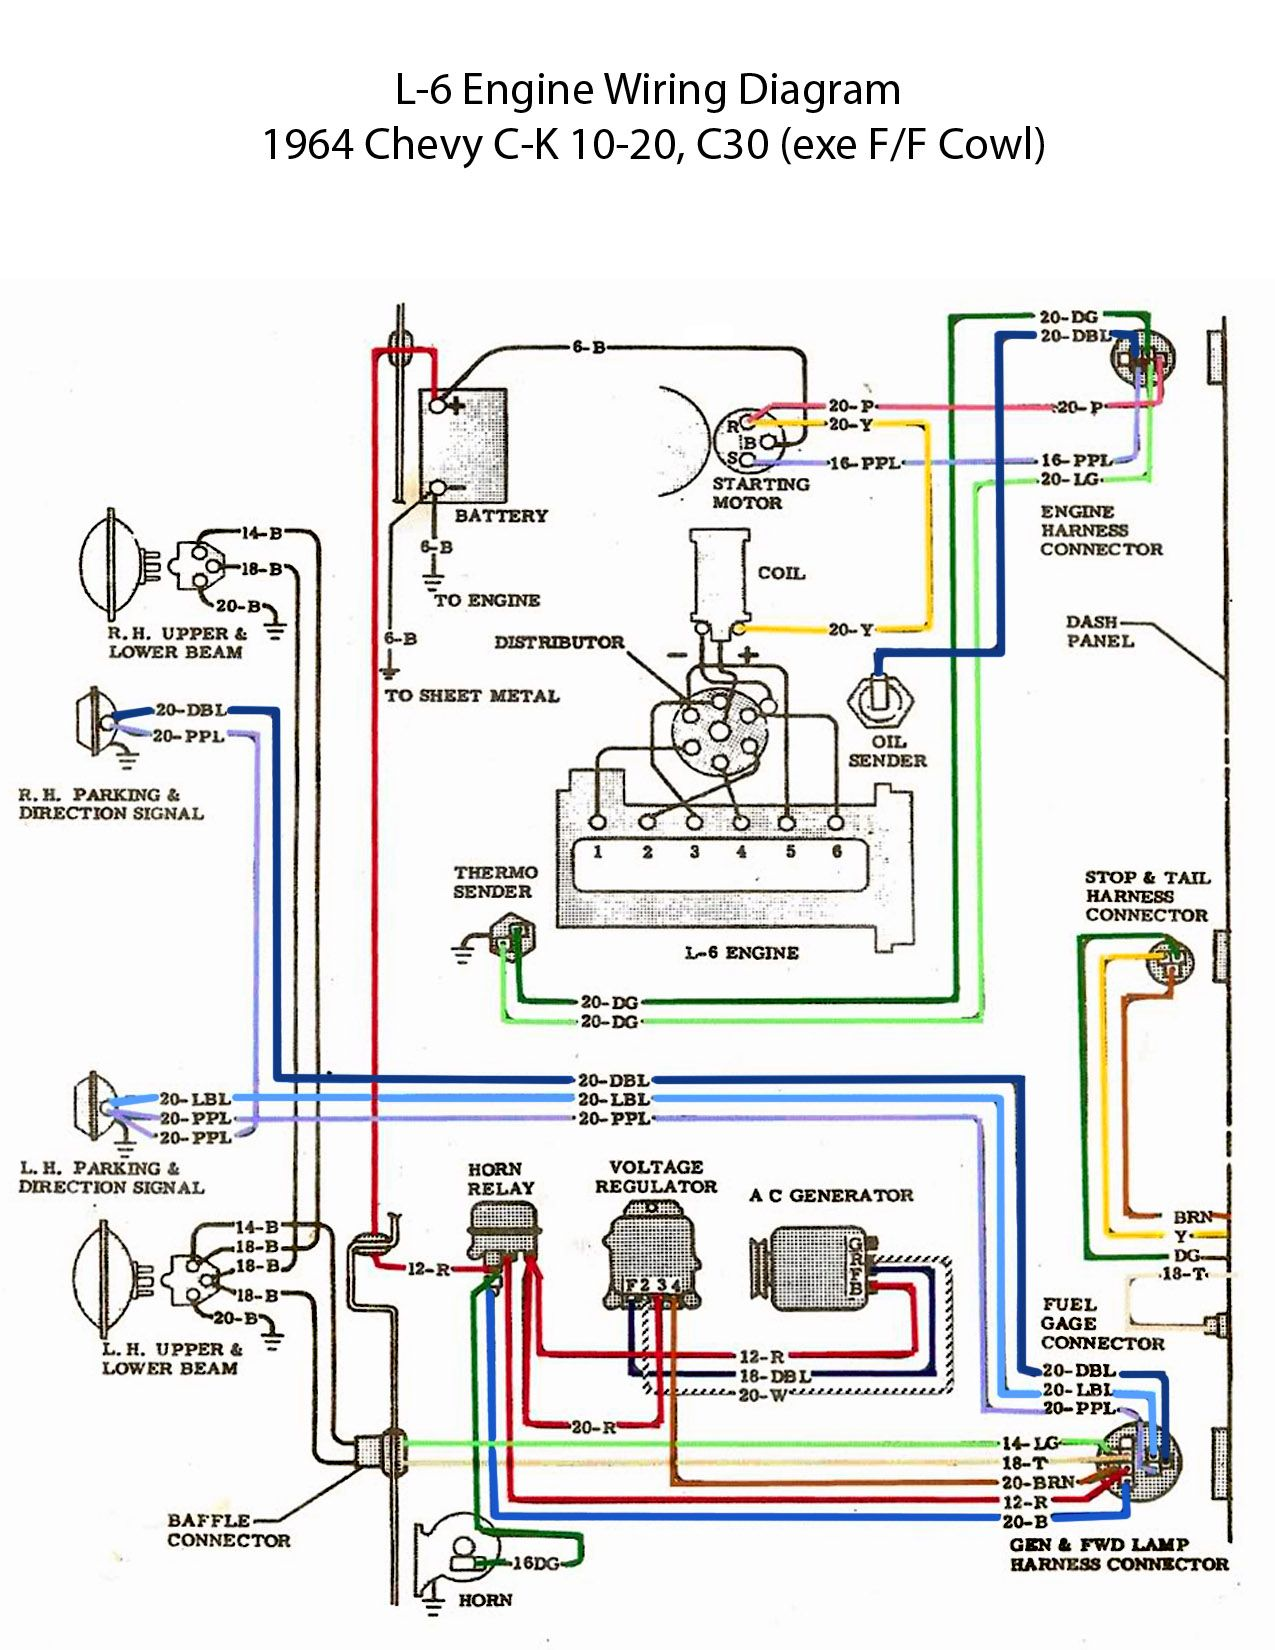 electric l 6 engine wiring diagram 60s chevy c10 wiring rh pinterest com chevy ignition switch wiring diagram 93 chevy truck wiring diagram [ 1275 x 1650 Pixel ]